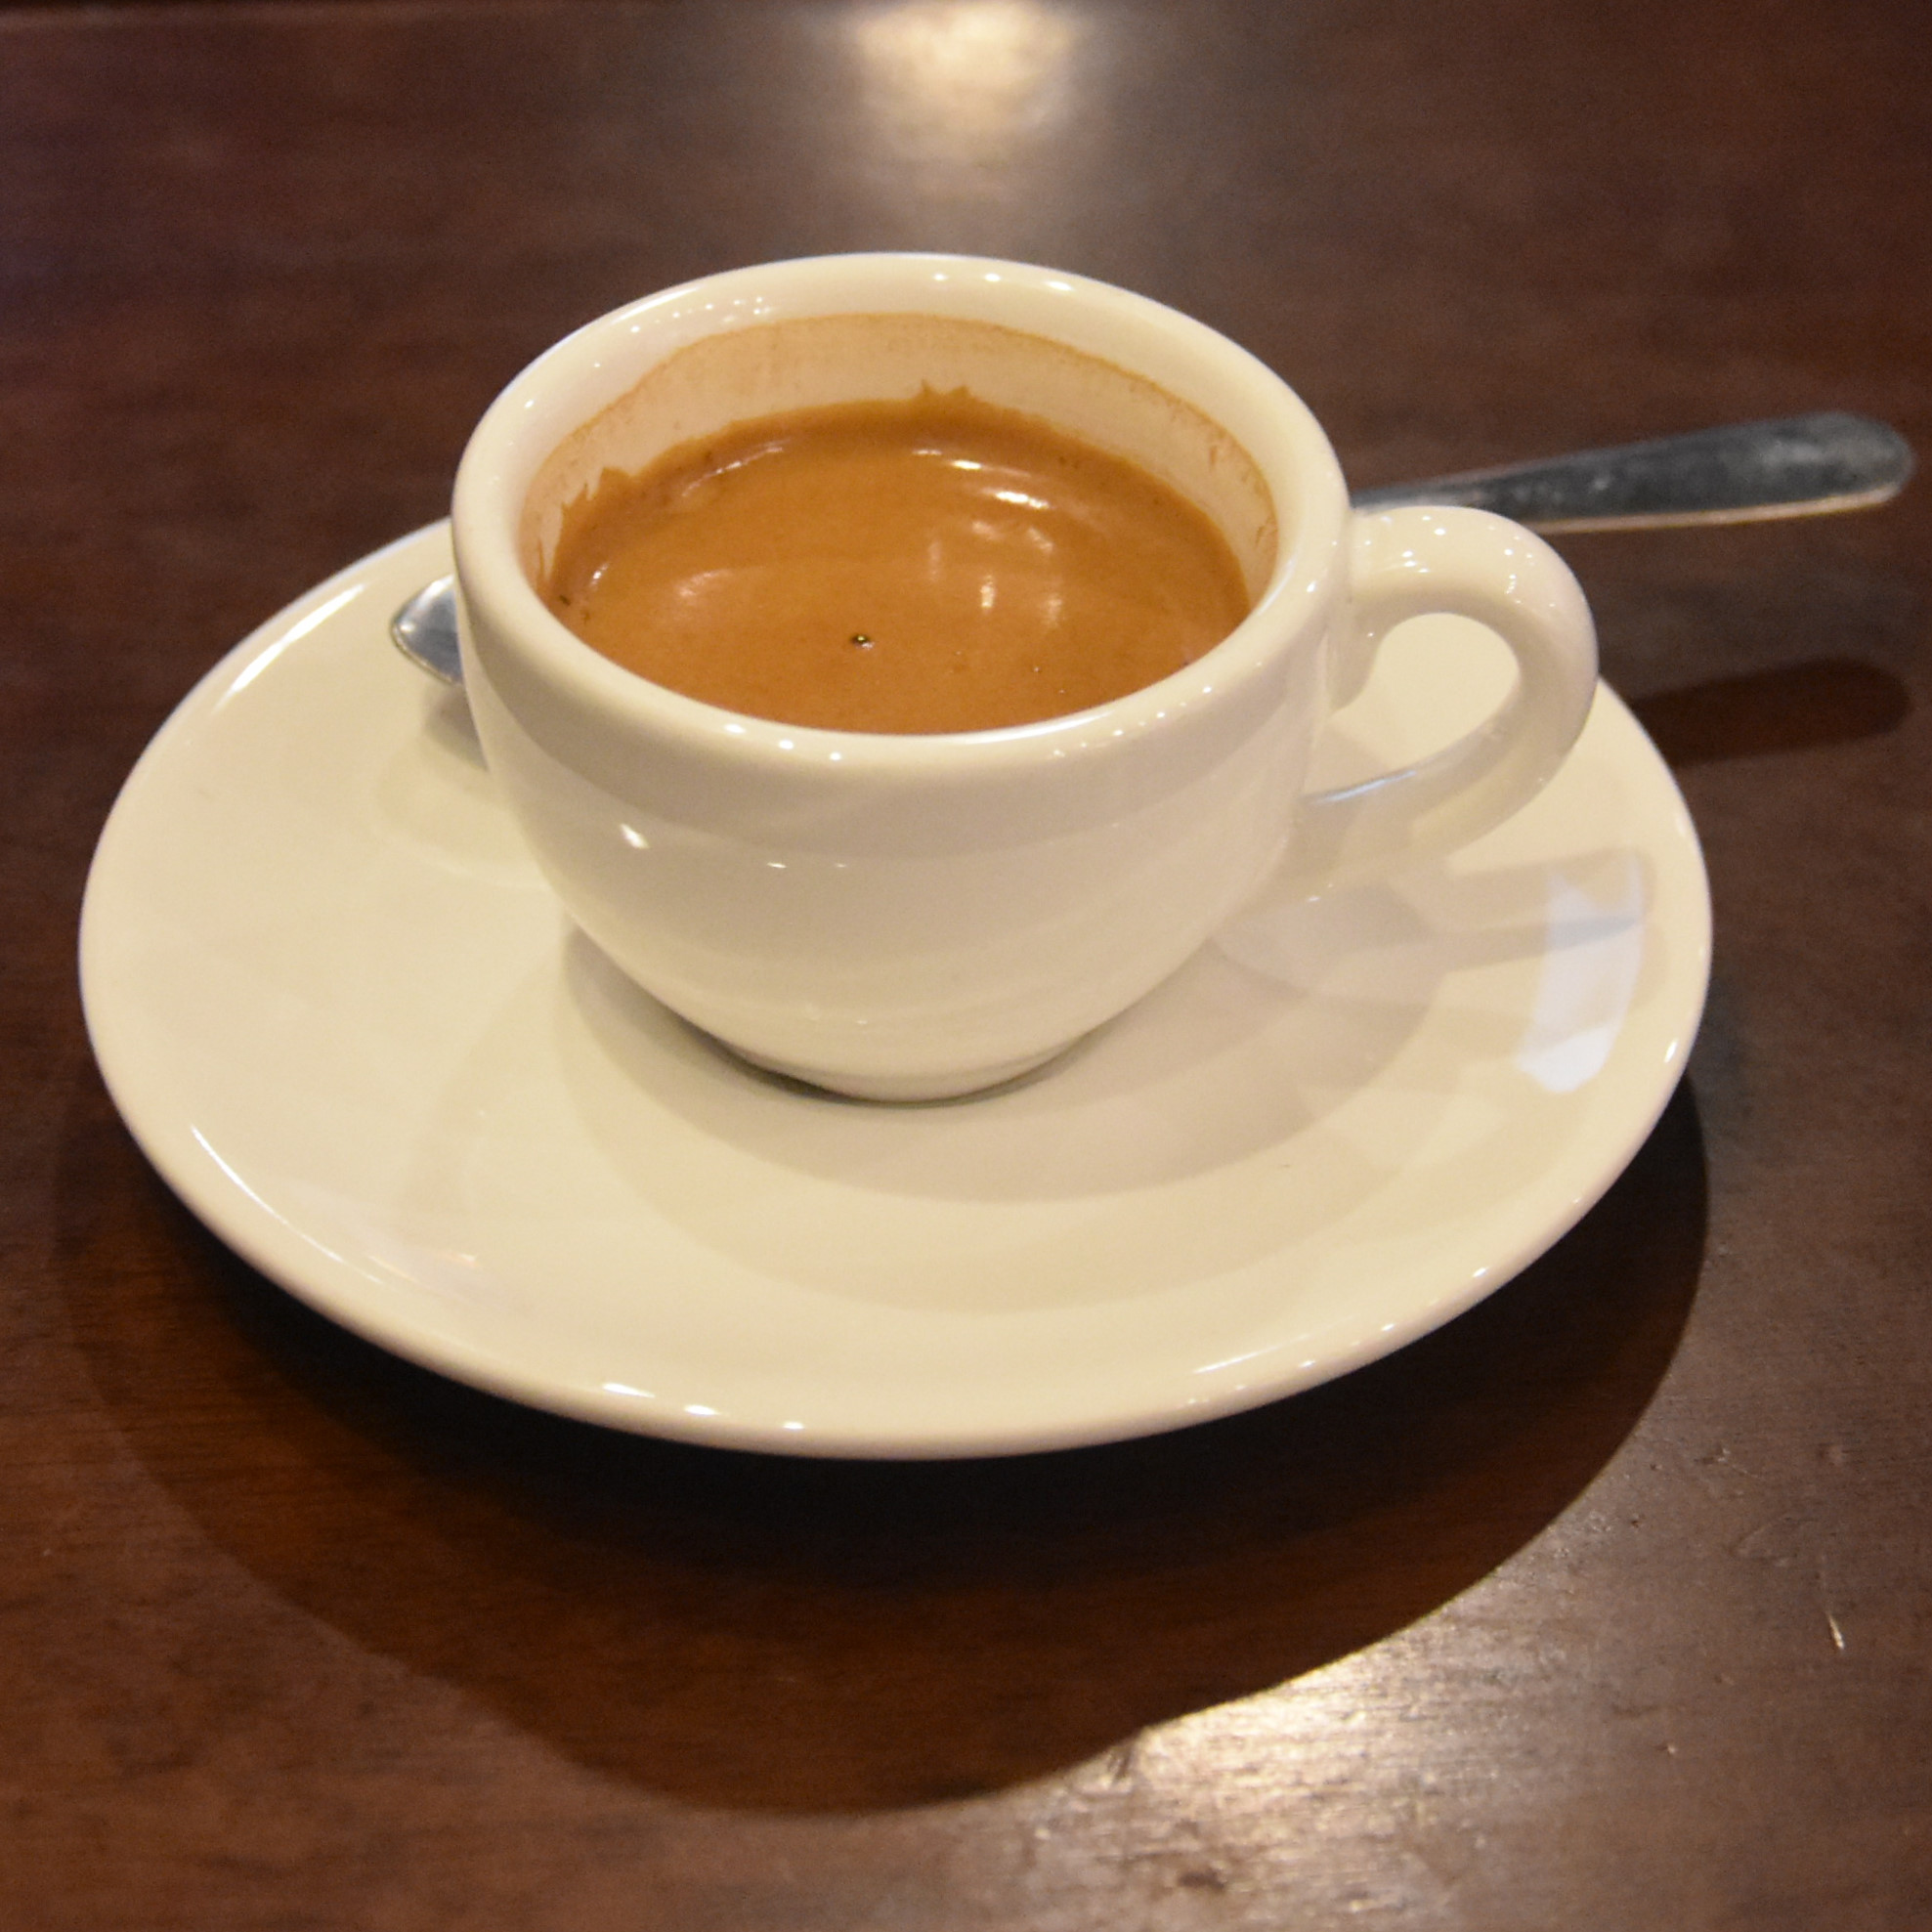 An espresso, served in a class white cup, at Firecreek Big Park in the Village of Oak Creek in Arizona.